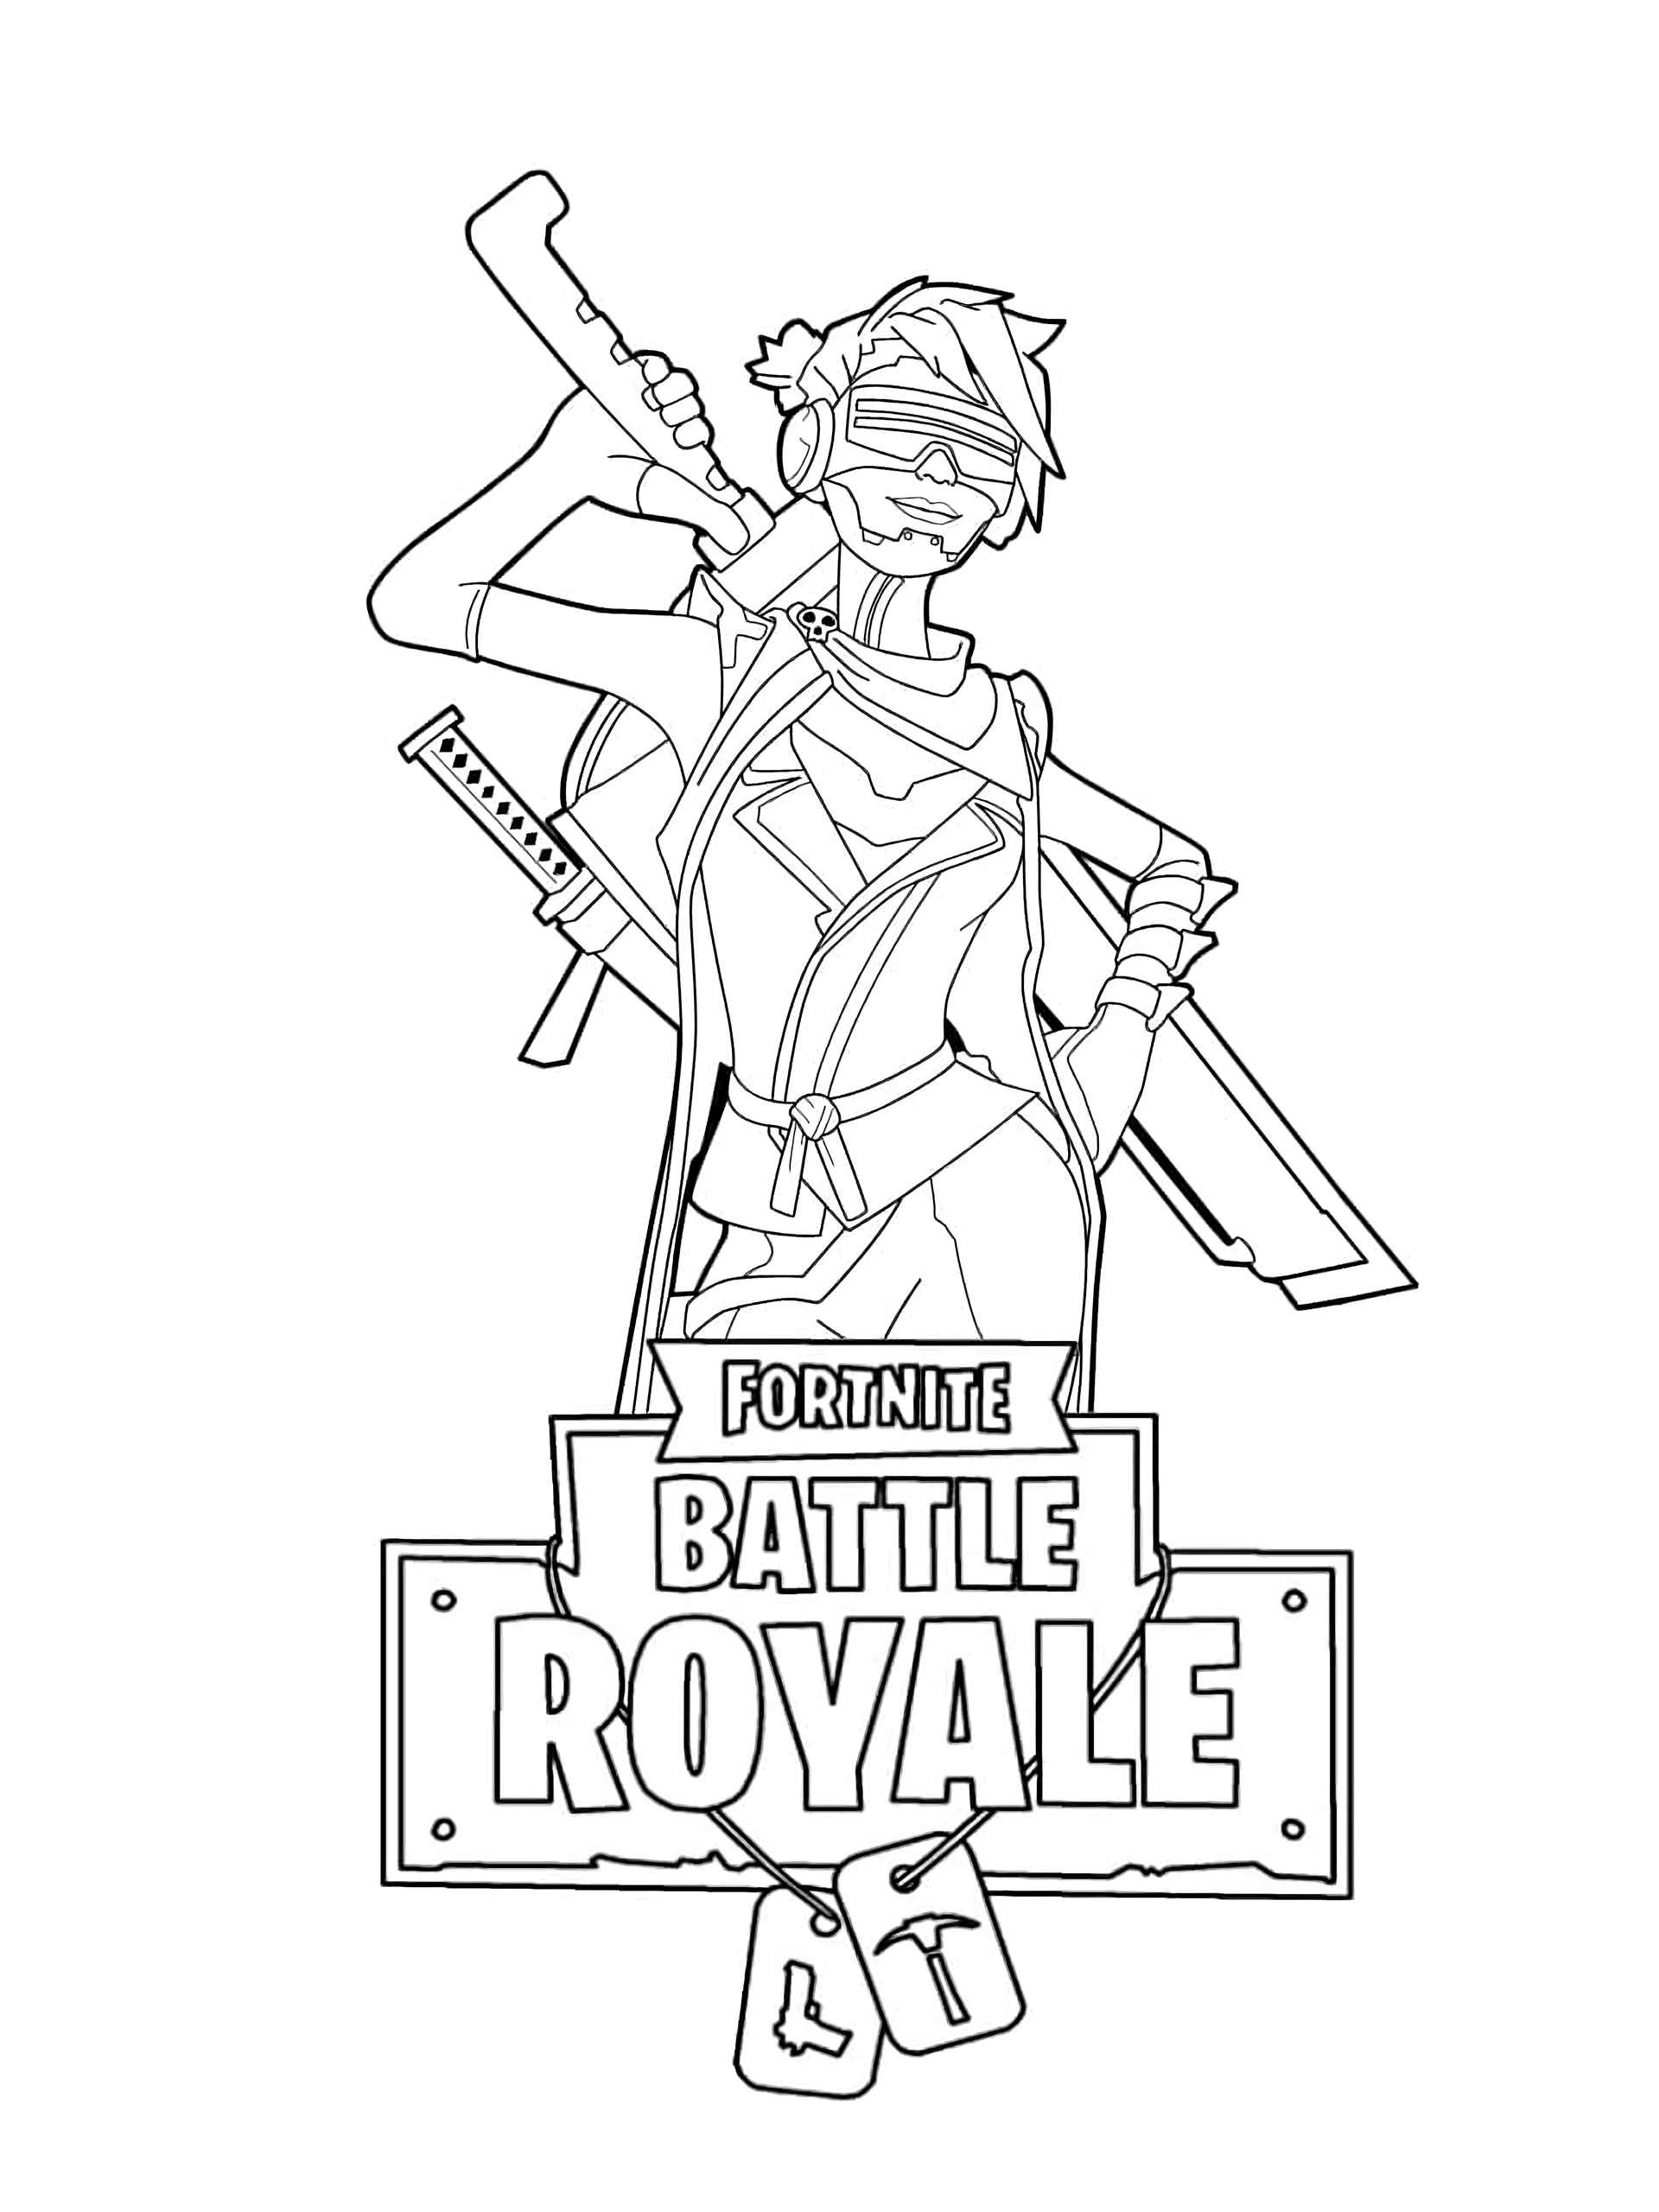 Coloring Page Of The Tough Girl With Two Swords Skin From The Game Fortnite